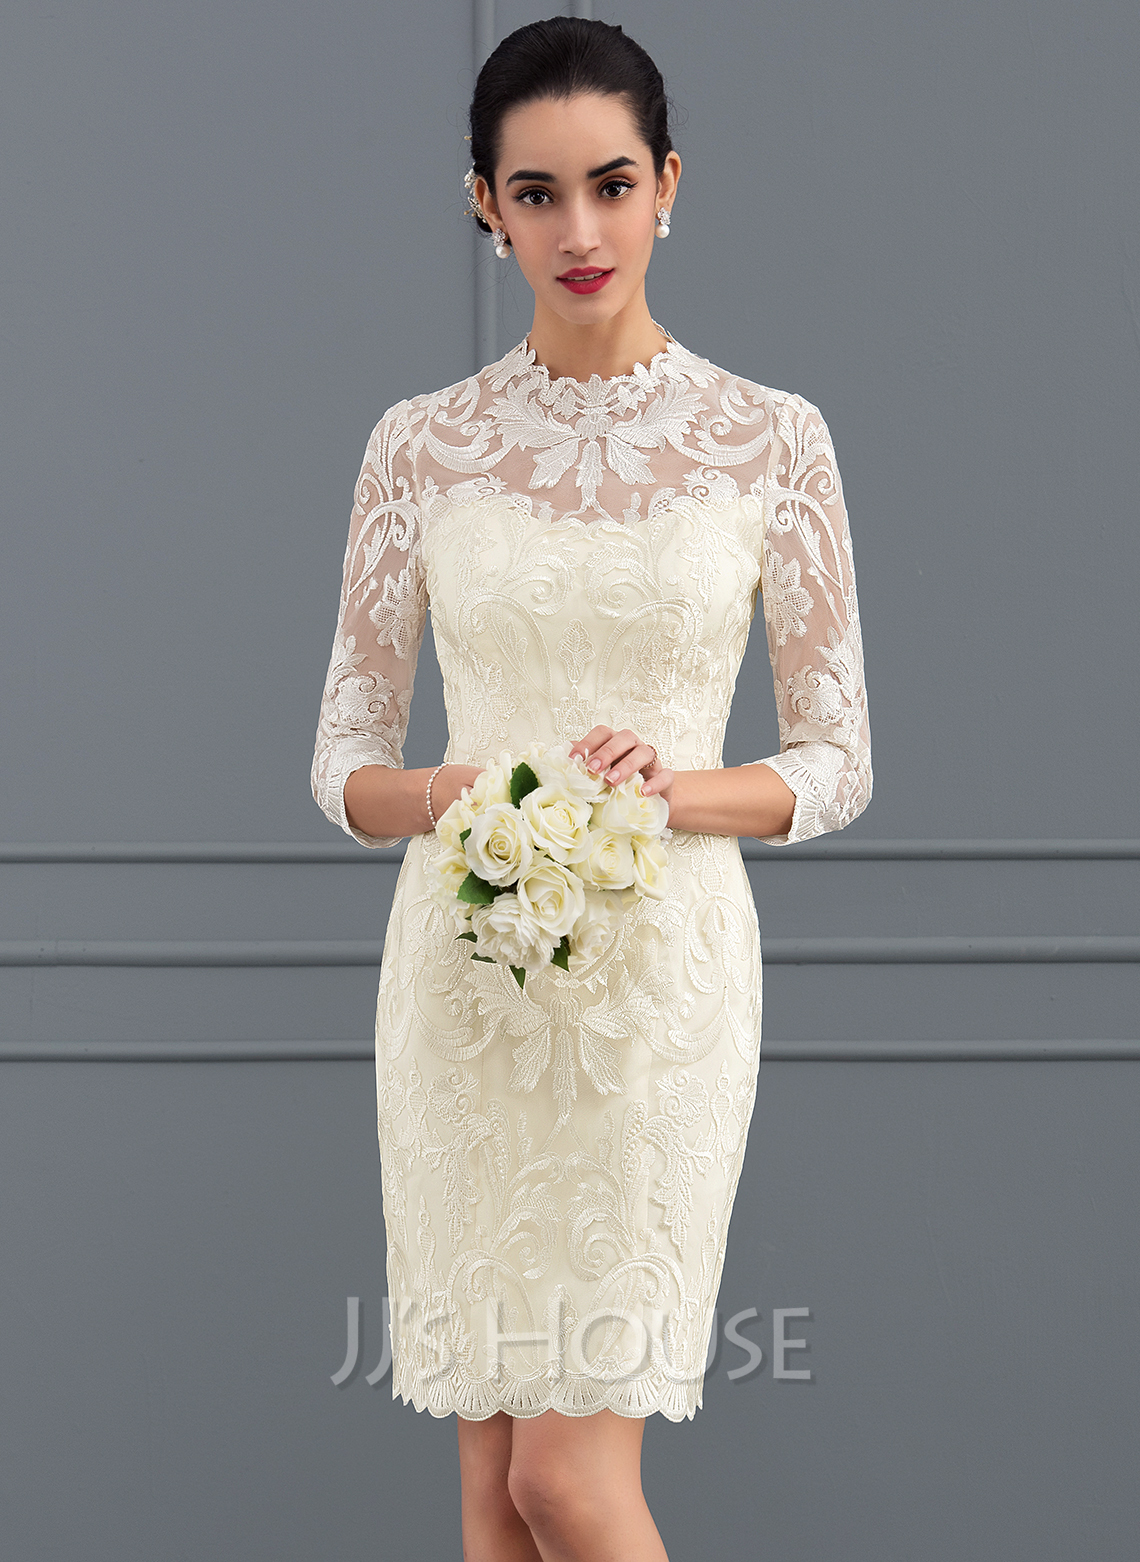 Most Popular, Wedding Dresses in Color, Wedding Dresses: Affordable ...